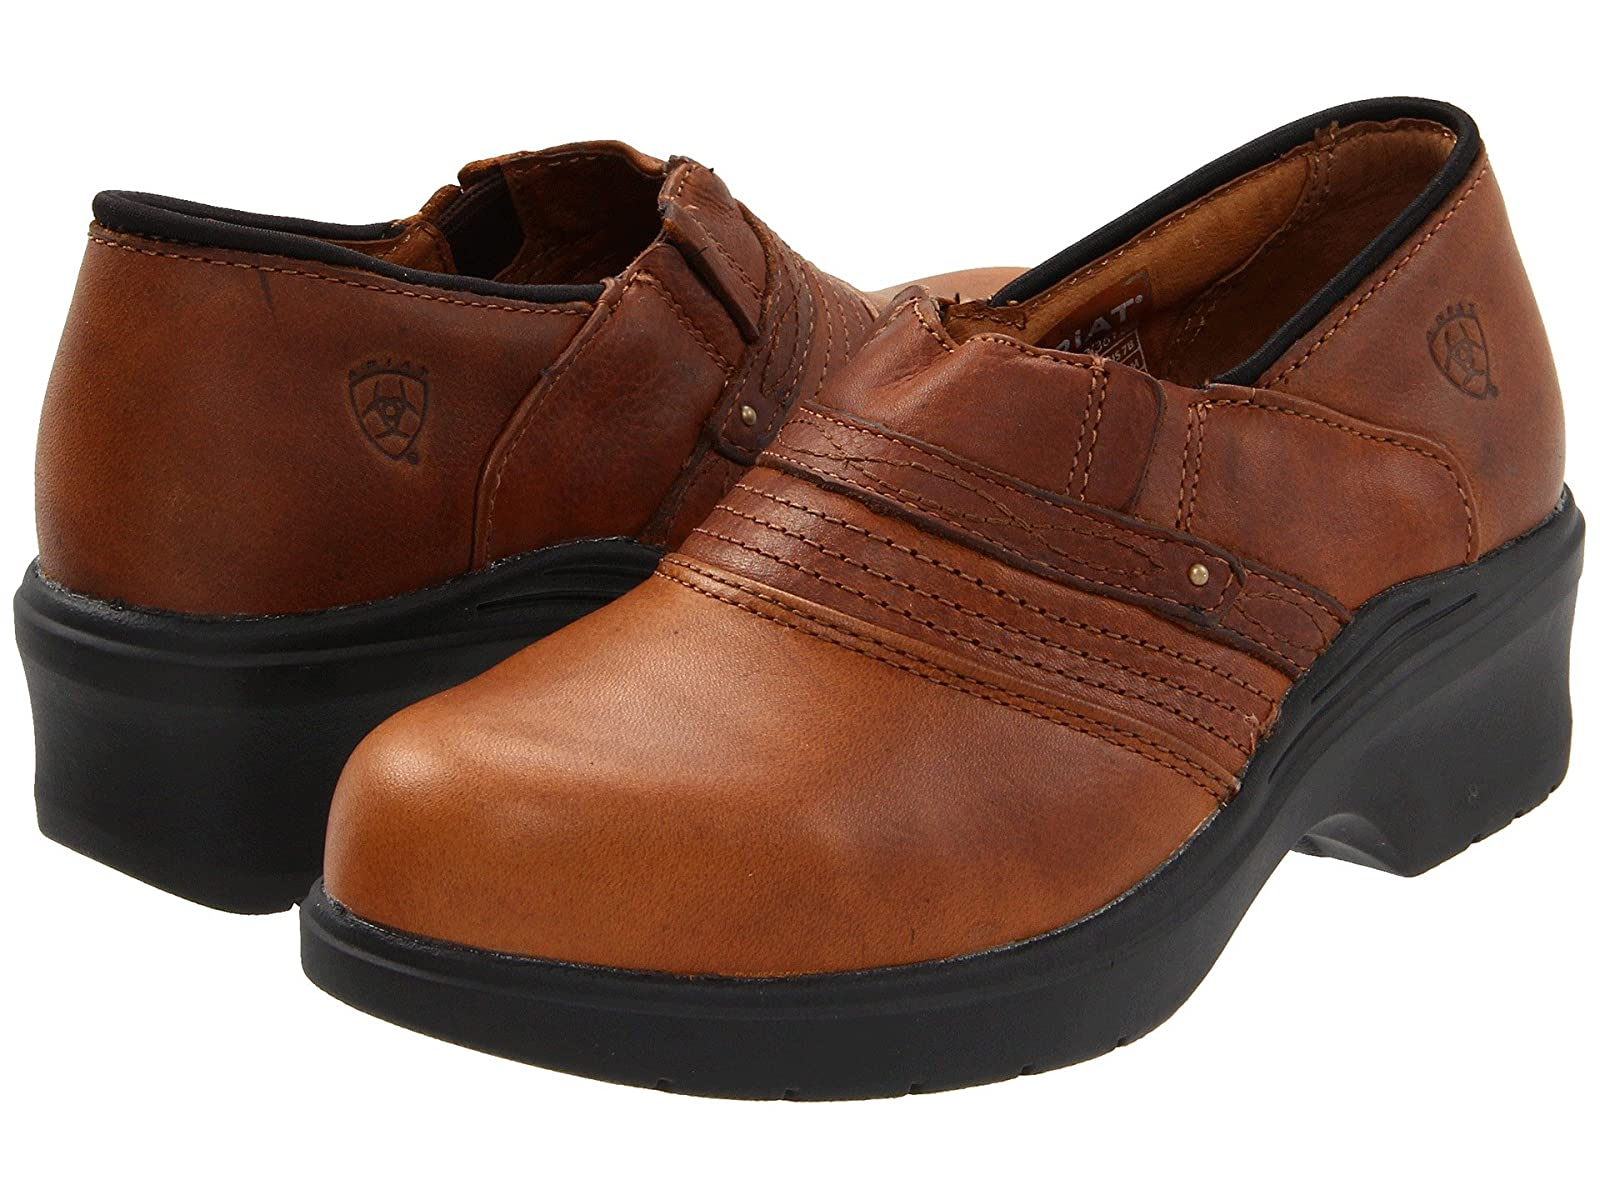 Ariat Safety Toe ClogEconomical and quality shoes